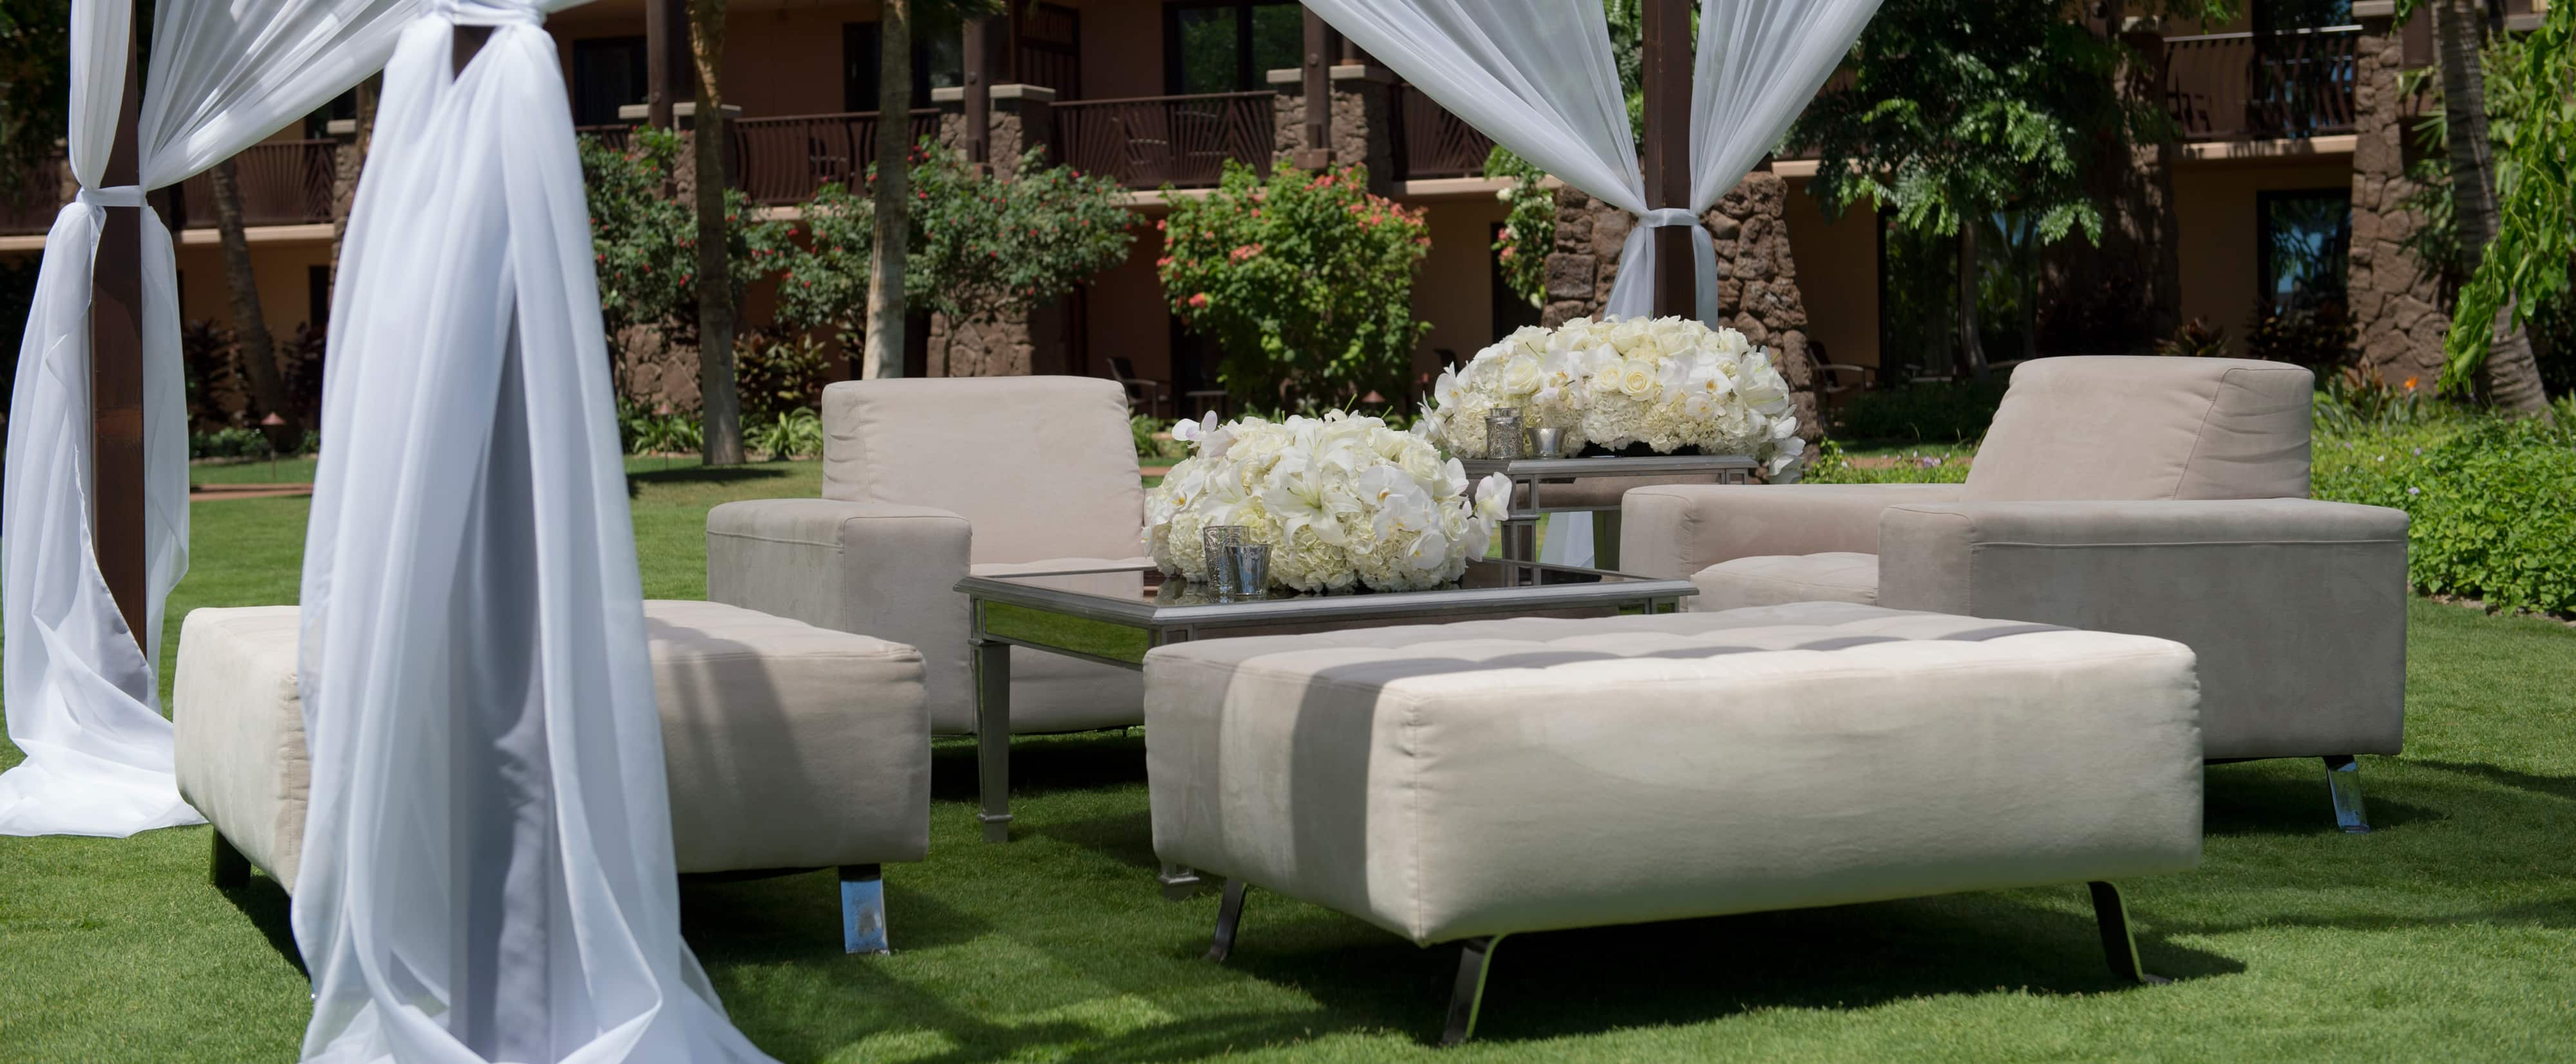 Gray armchairs and ottomans around 2 white floral centerpieces under a white-draped canopy on a lawn